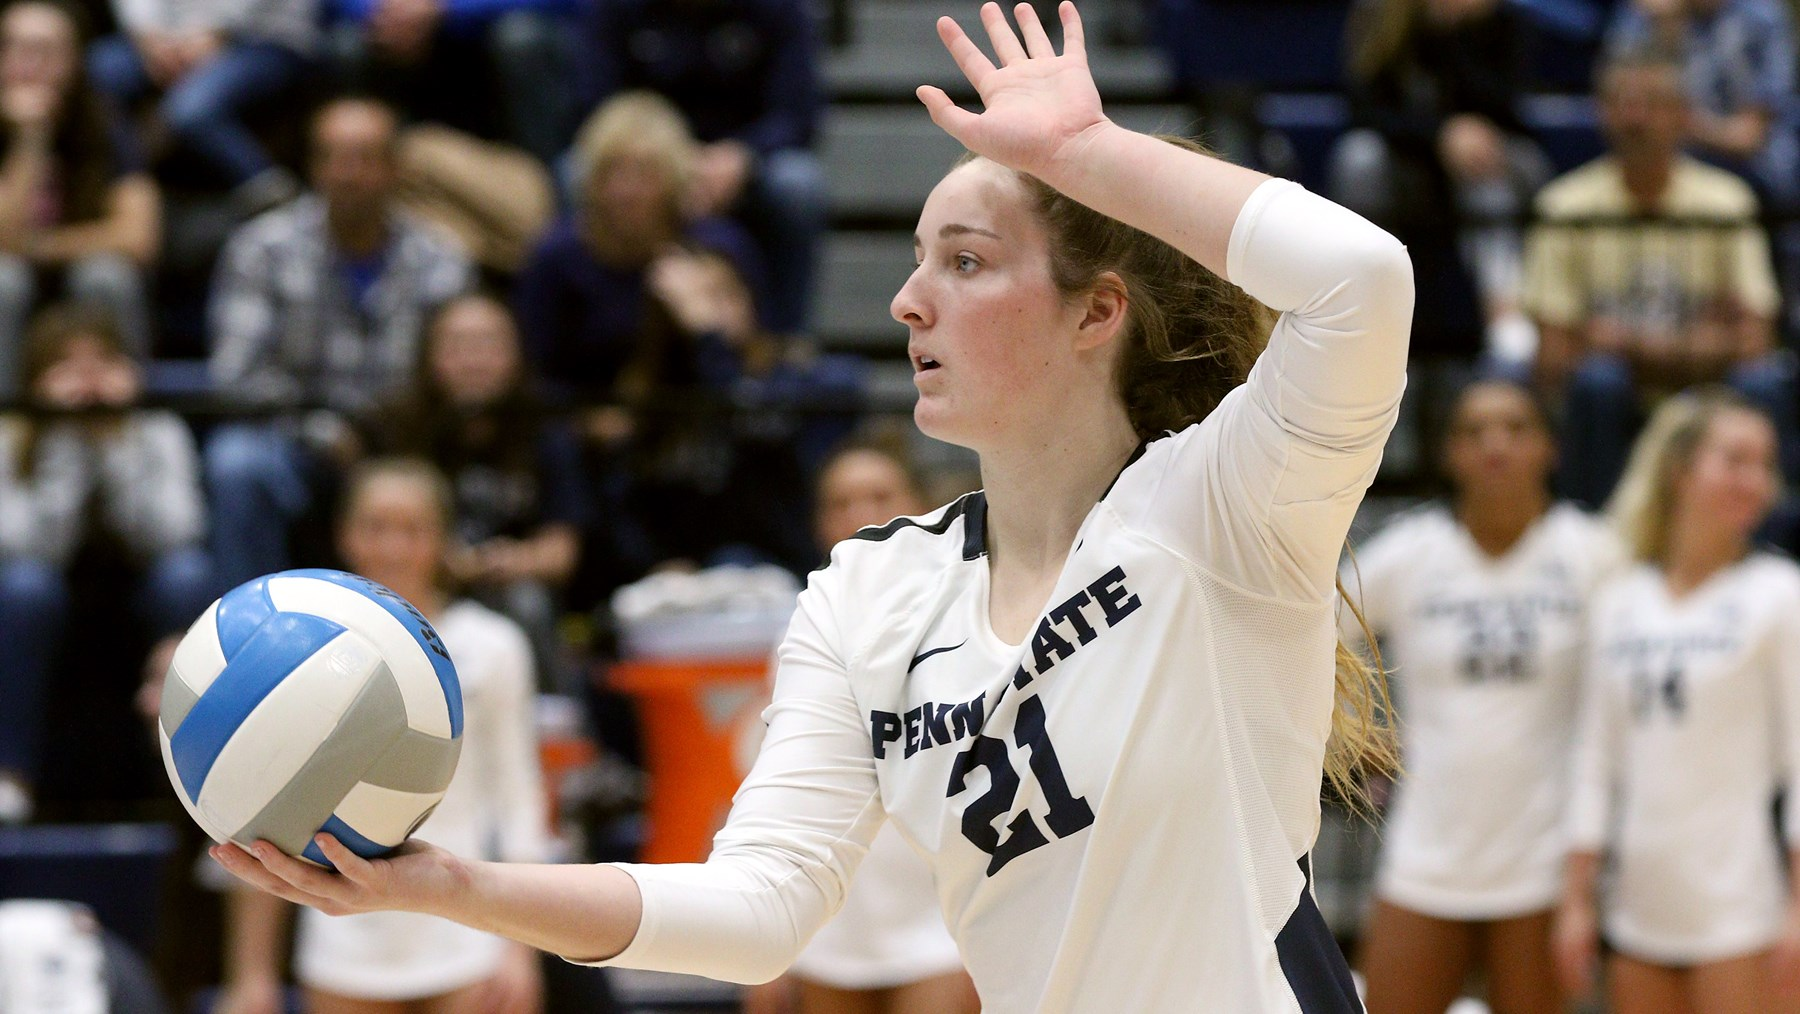 Macall Peed Women S Volleyball Penn State University Athletics